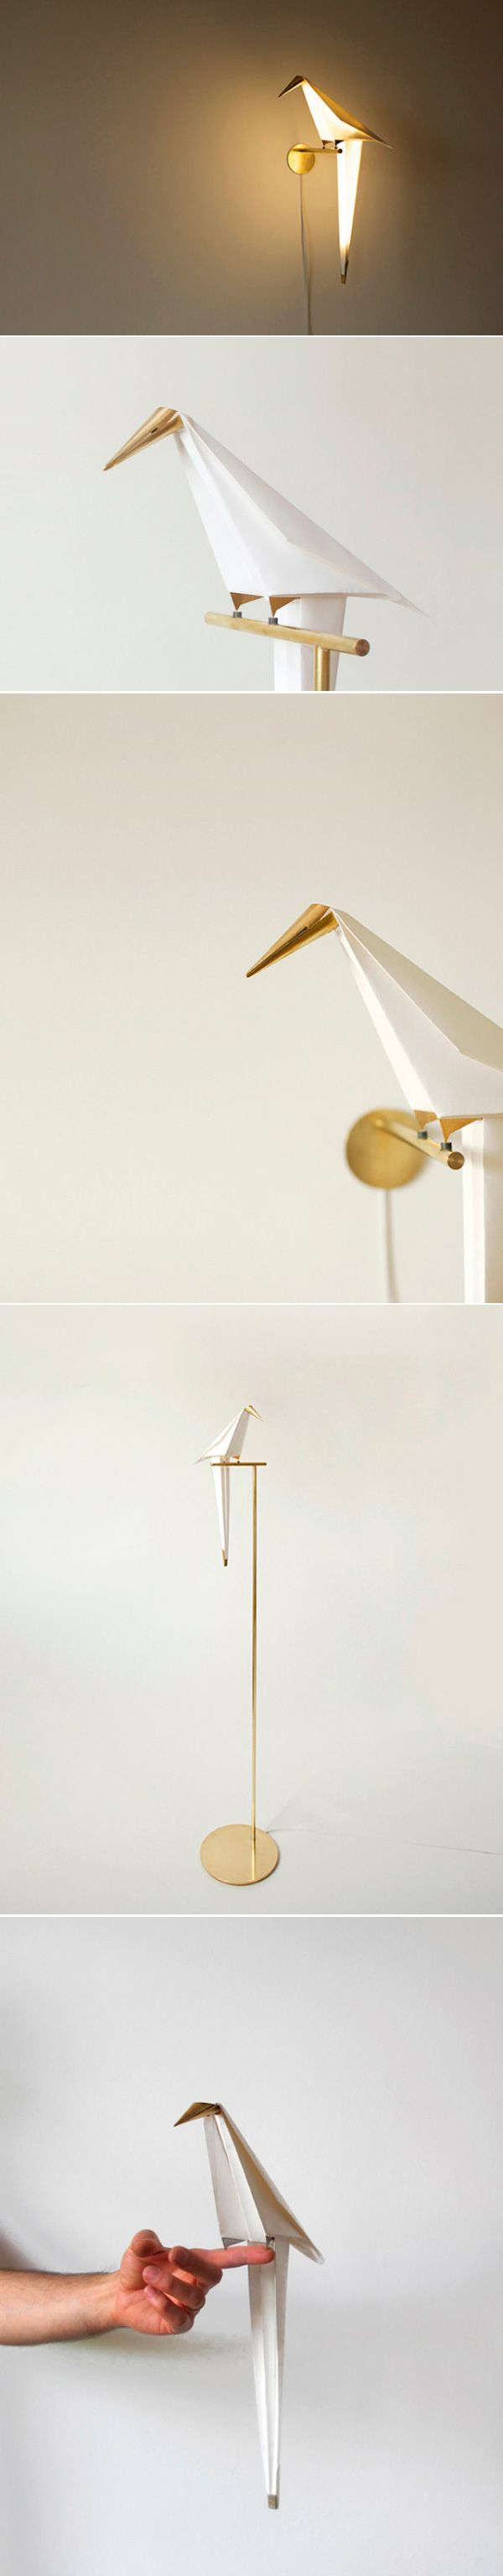 High Quality Interior Design | Decoration | Home Decor | Furniture | Perched Bird Lamp  By Umut Yamac Great Ideas